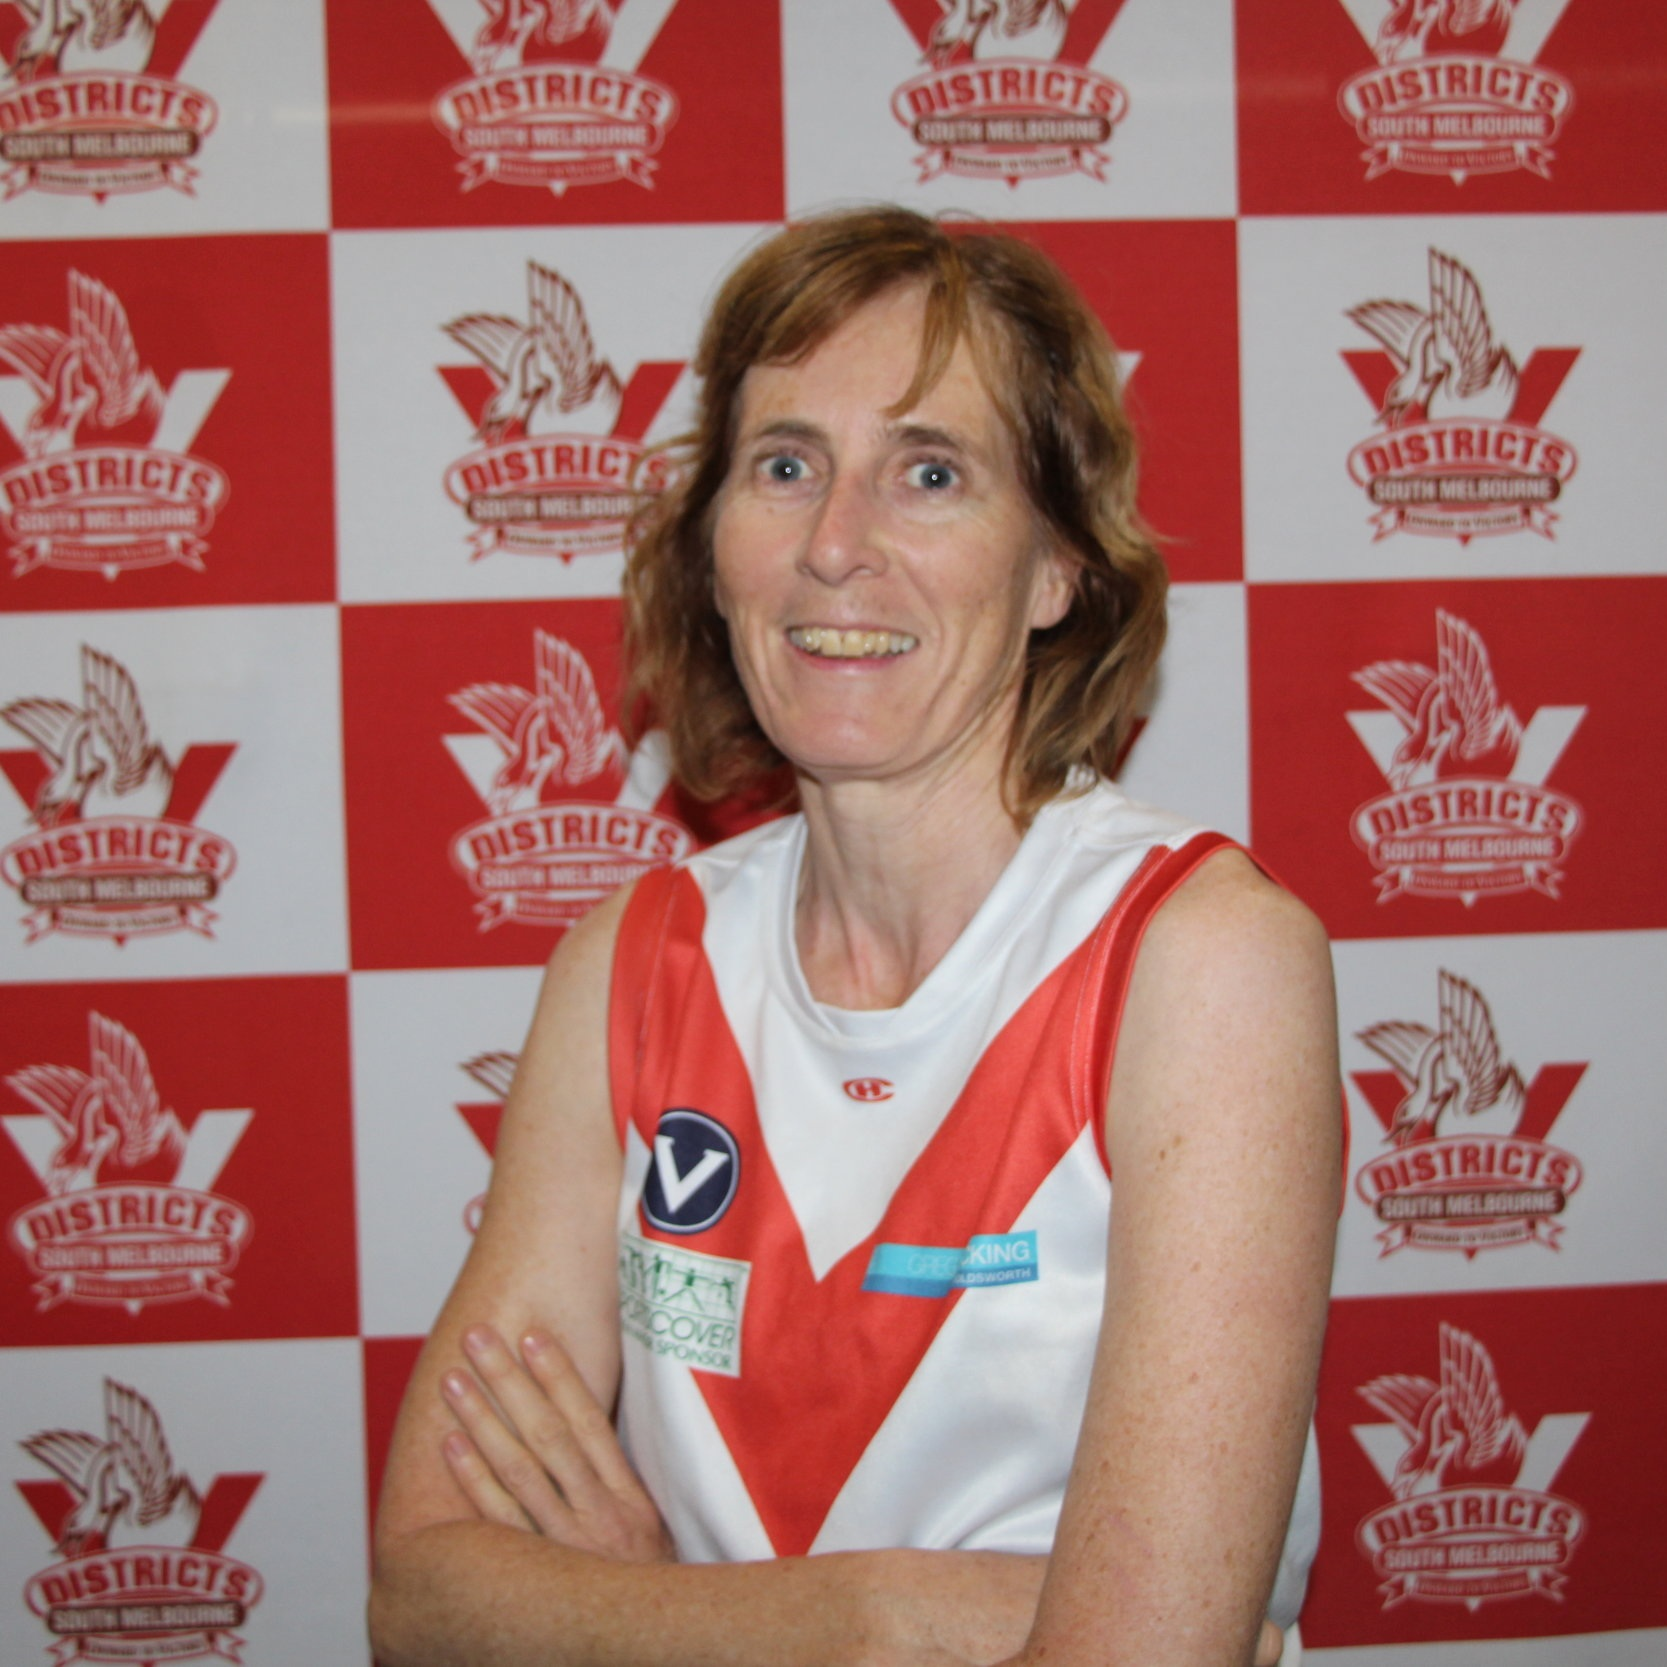 """Cate  Cate has taken up footy for 2019 as, in her words, """"I can now that girls can play!"""" Cate has played many sports in the past and wanted to add footy to that list- she has not only learnt to play since joining the SMDFC academy but Cate has taken on the role of the Reserves Team Manager- thank you Cate! Away from footy and goal tracking Cate enjoys a home cooked meal with her friends (maybe she can cook us a Thursday dinner- please?) as well as bike riding and skiing up in the snowy hills of Victoria."""